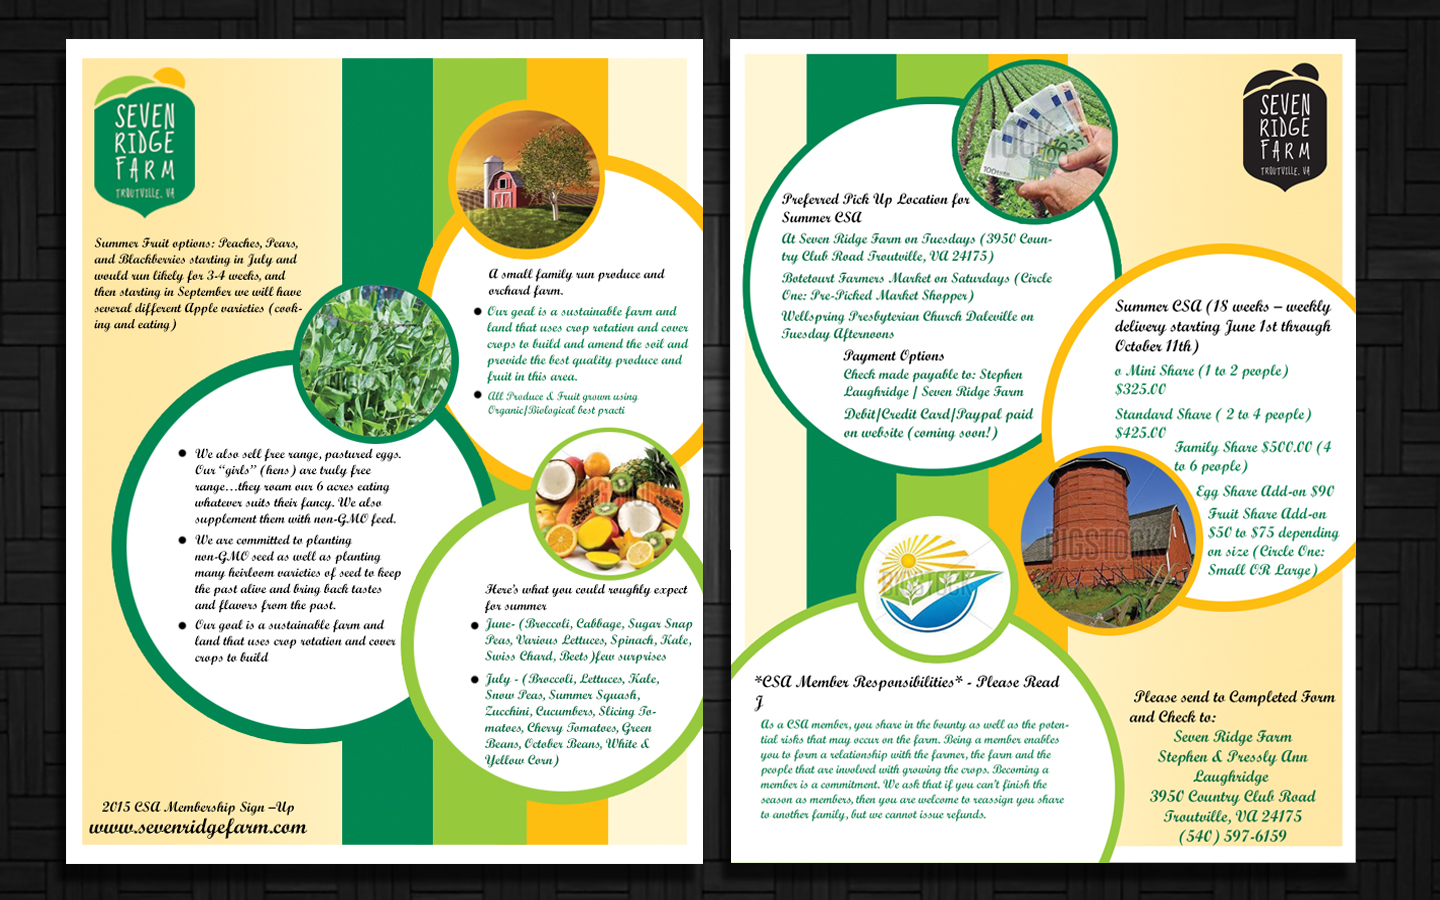 personable colorful advertising flyer designs for a advertising flyer design design 5802115 submitted to family farm business requires flyer for local